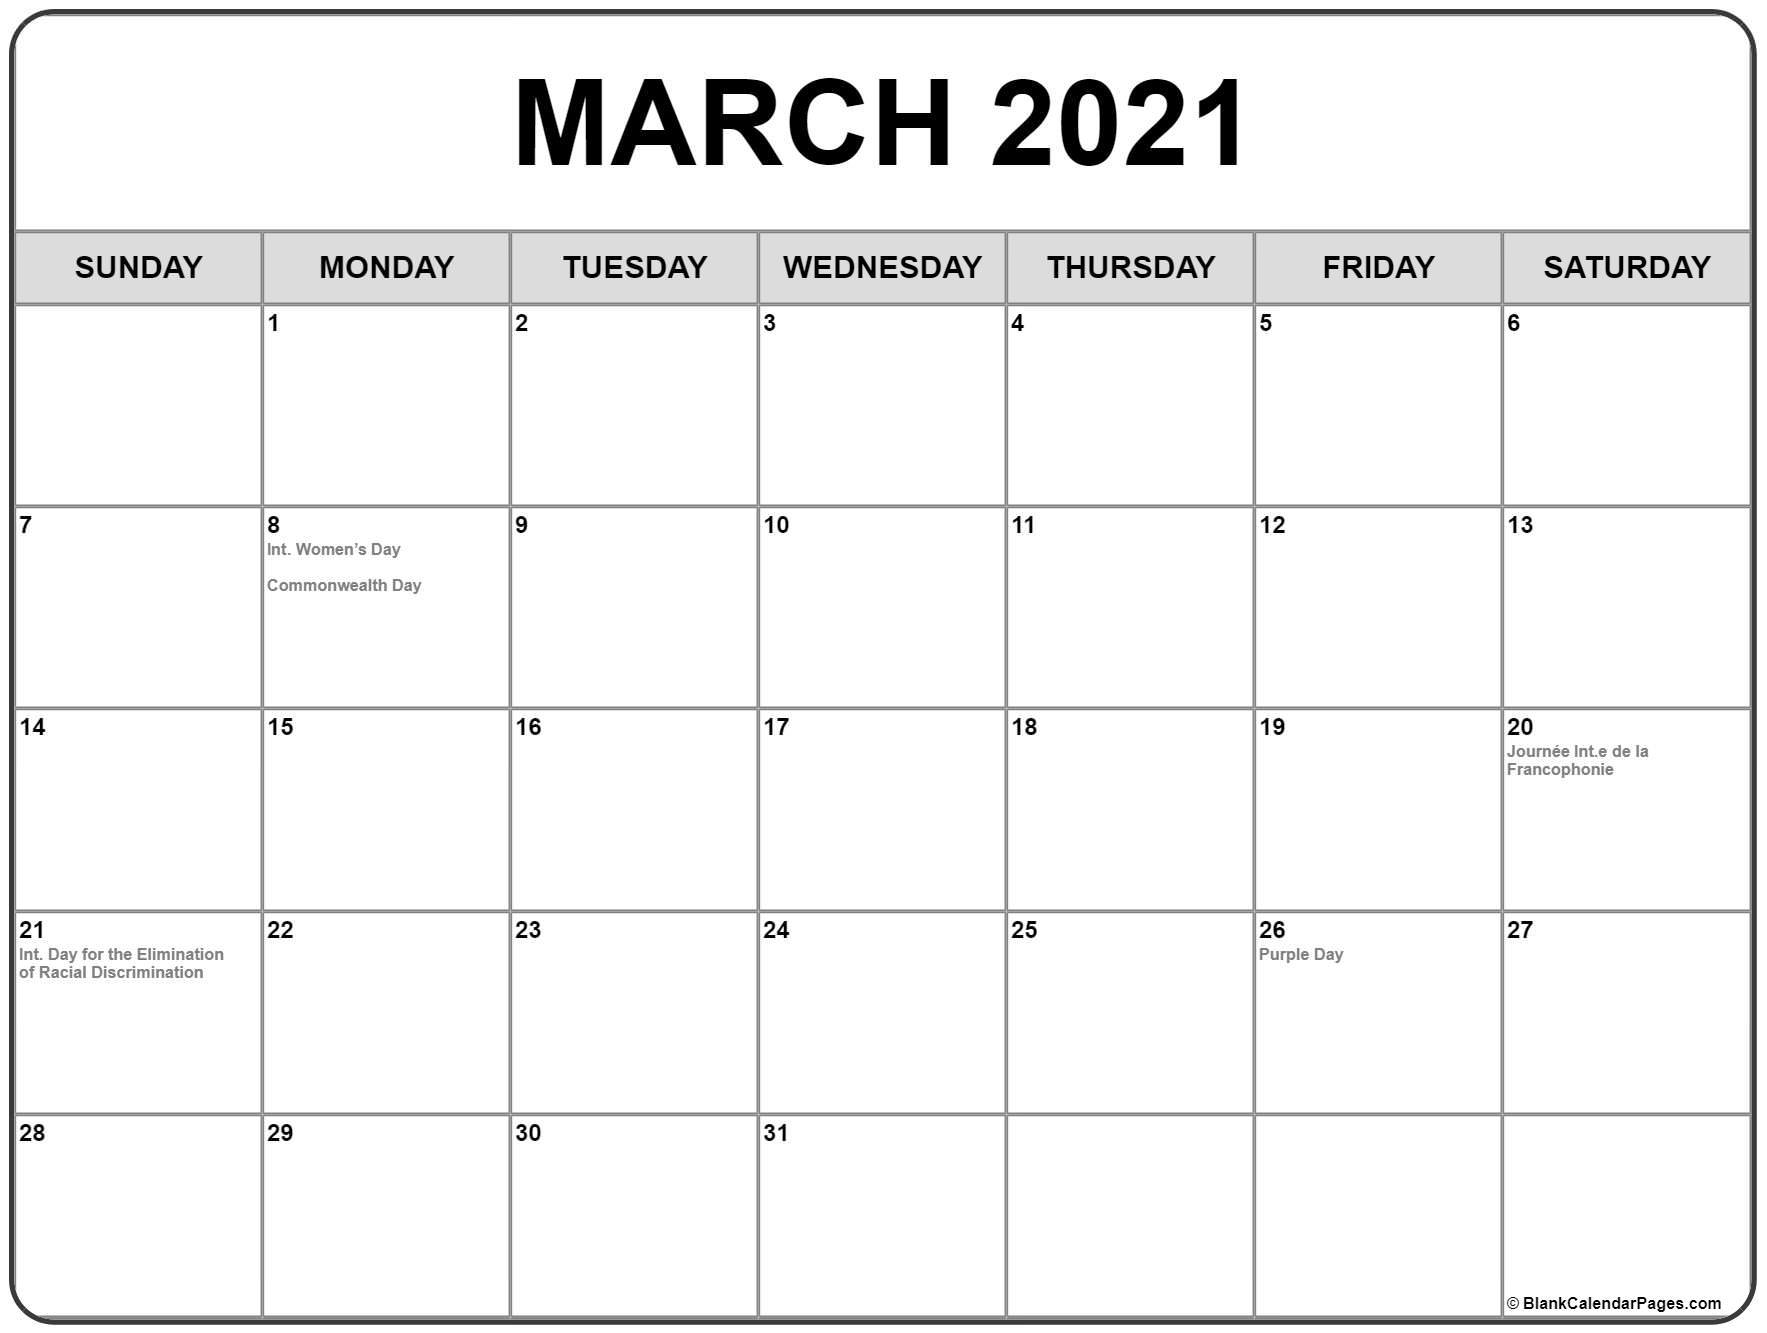 March 2021 Calendar With Holidays